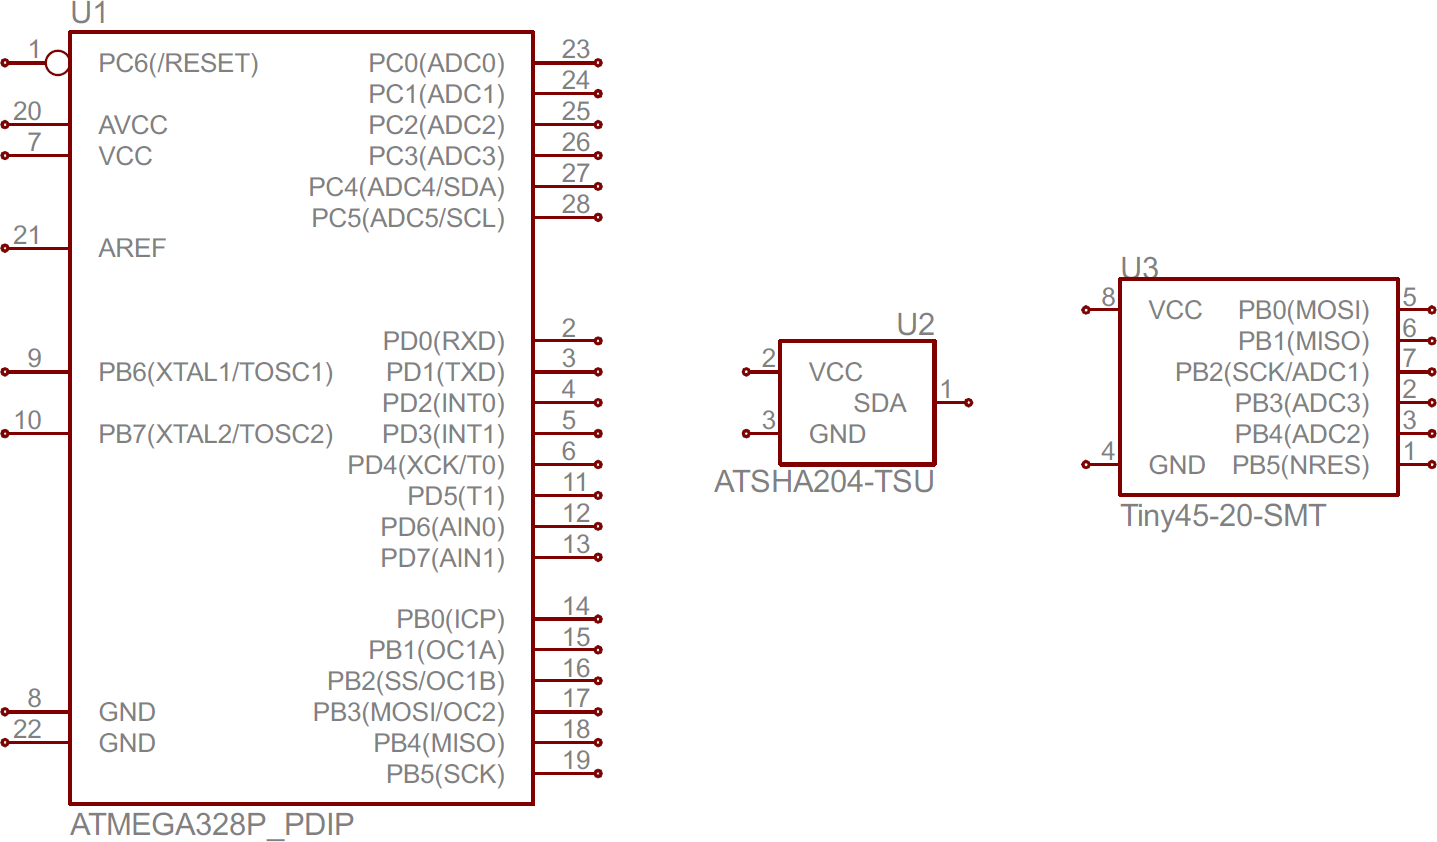 How To Read A Schematic Laptop Connections For Wiring Diagram Atmega328 Atsha204 And Attiny45 Ic Symbols